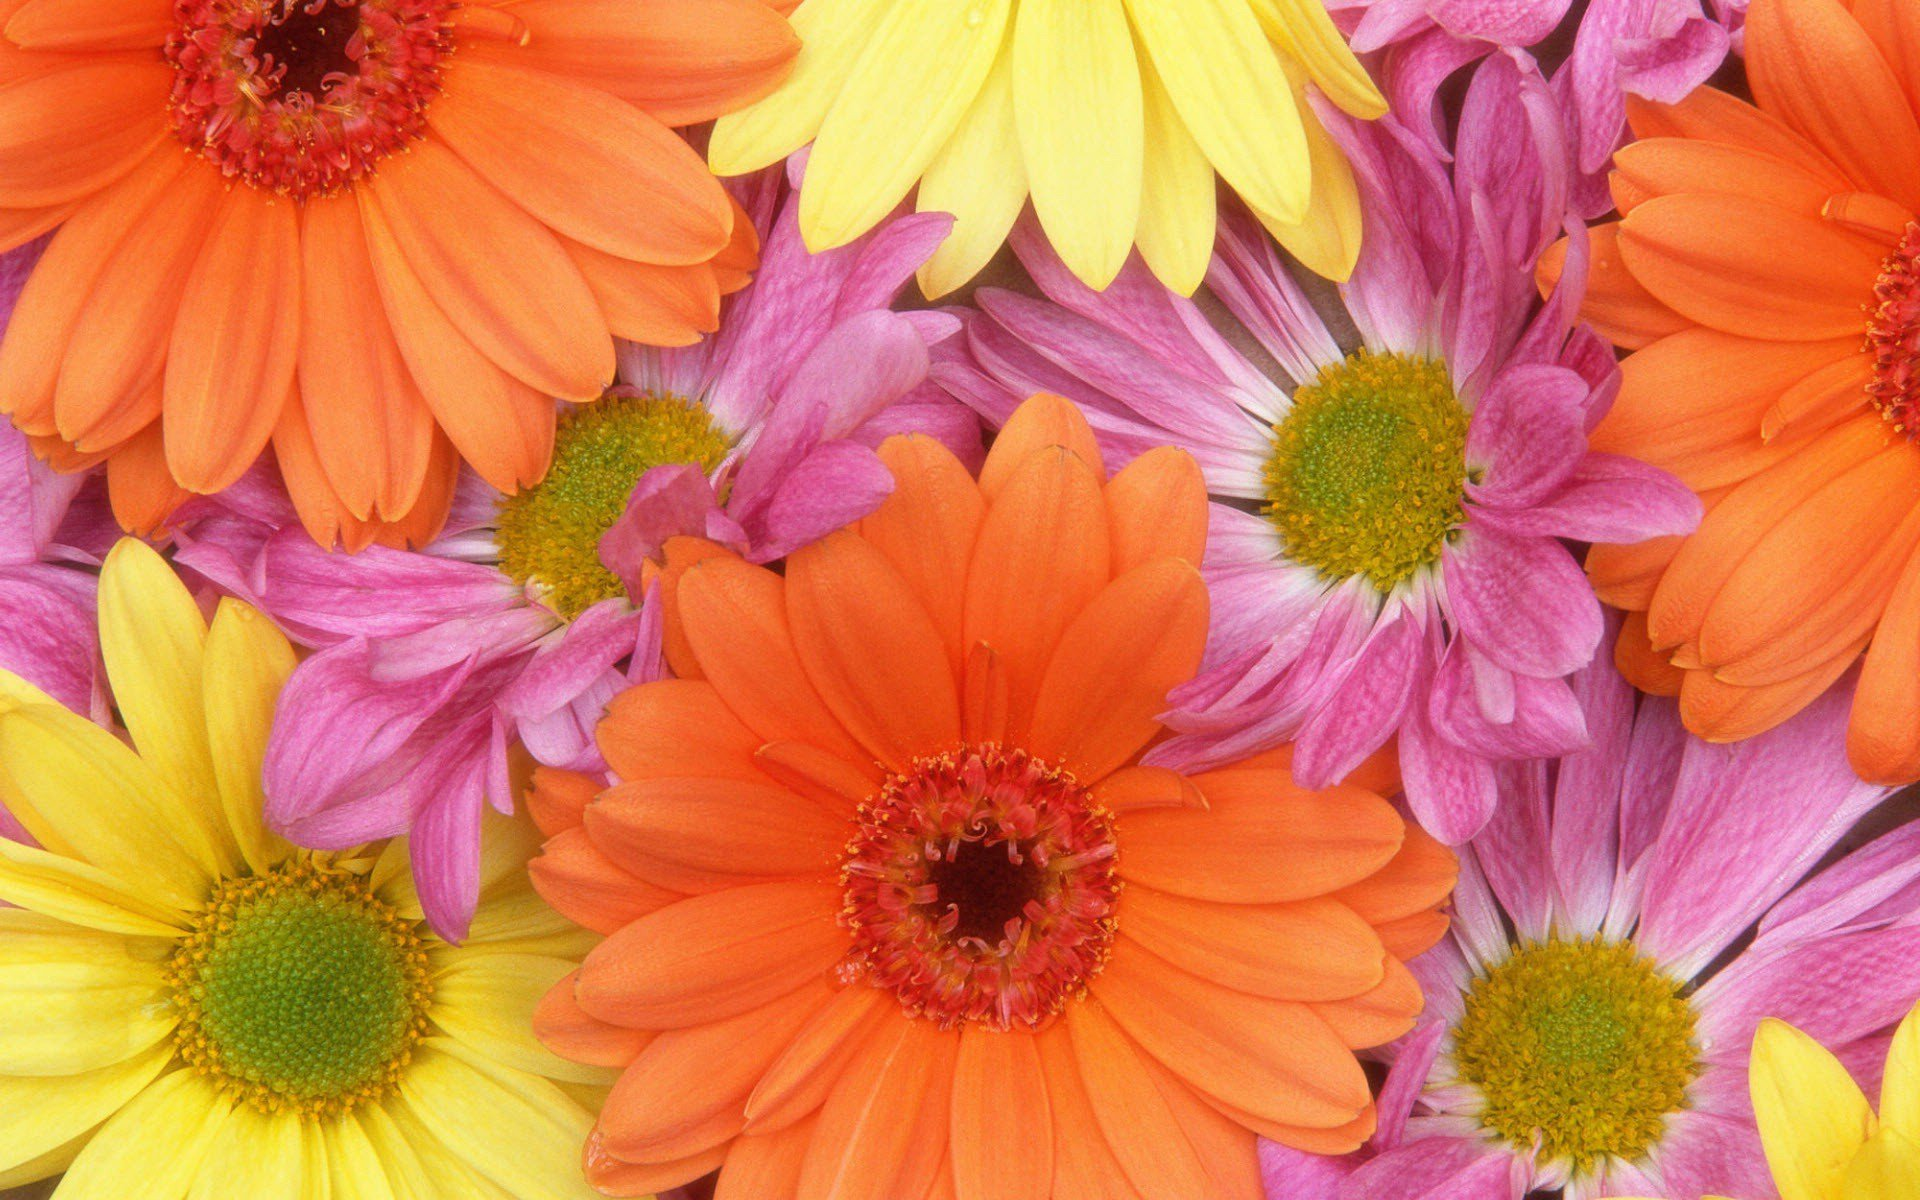 Free Colorful Flower Wallpaper Downloads: Colorful Daisies, HD Flowers, 4k Wallpapers, Images